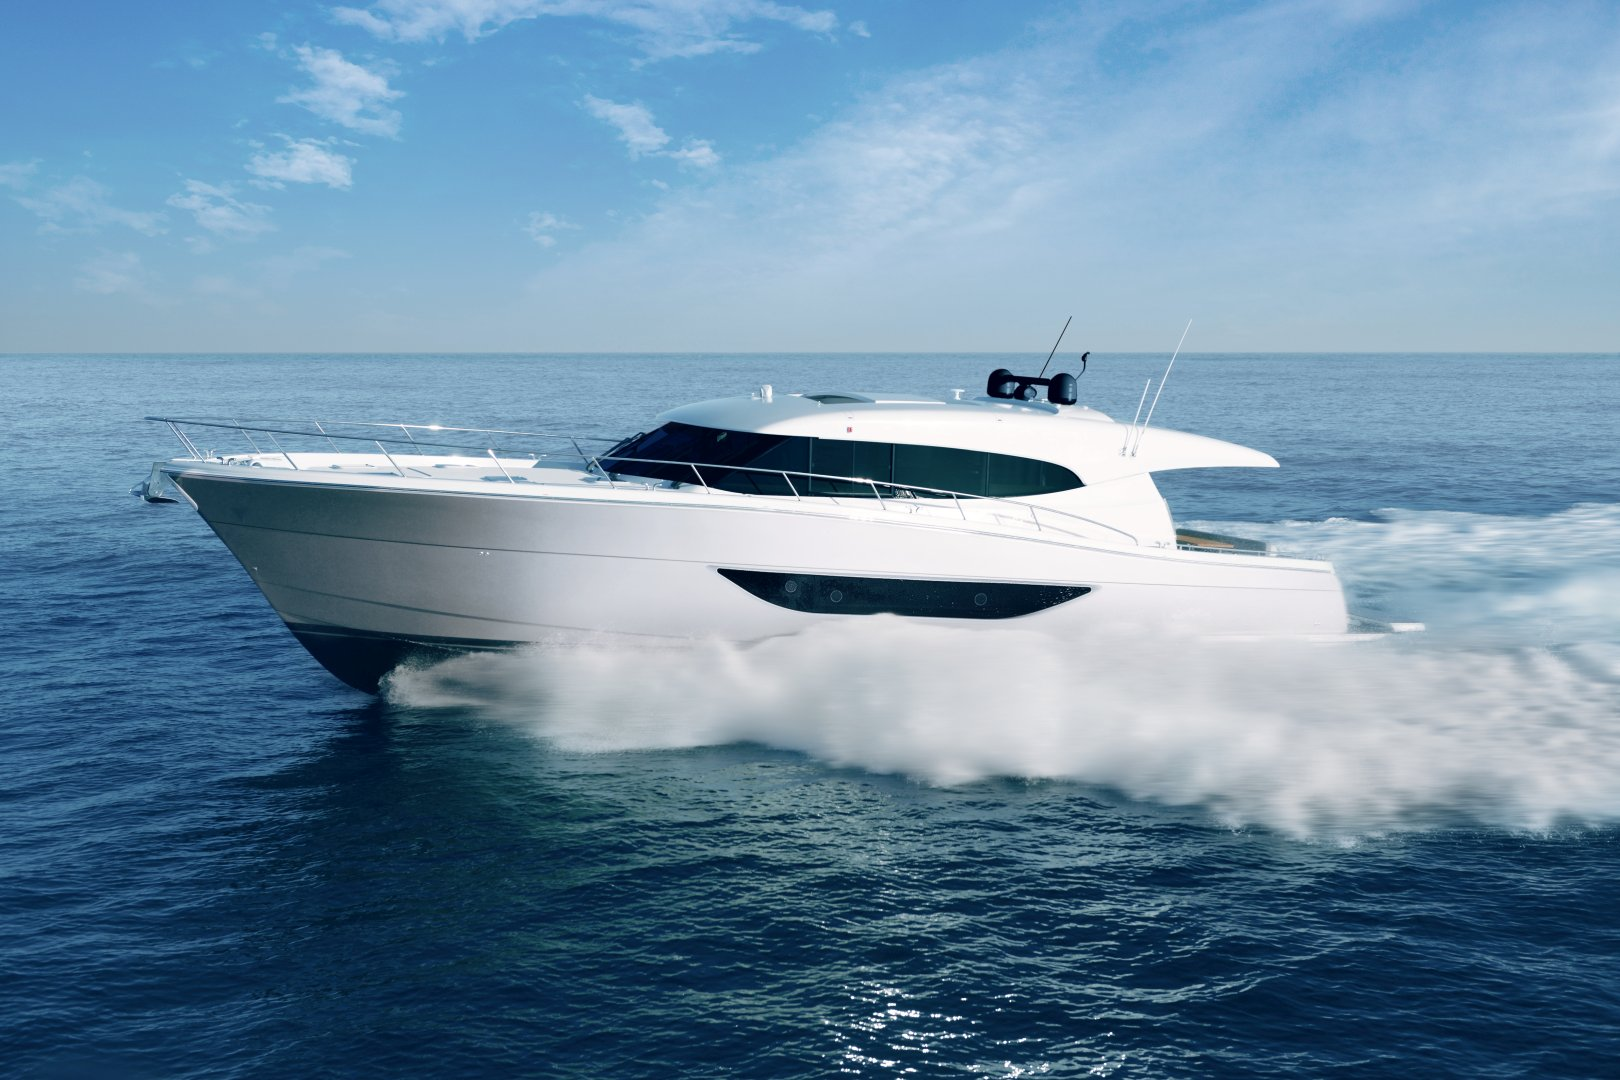 360 VR Virtual Tours of the Maritimo S70 – VRCLOUD